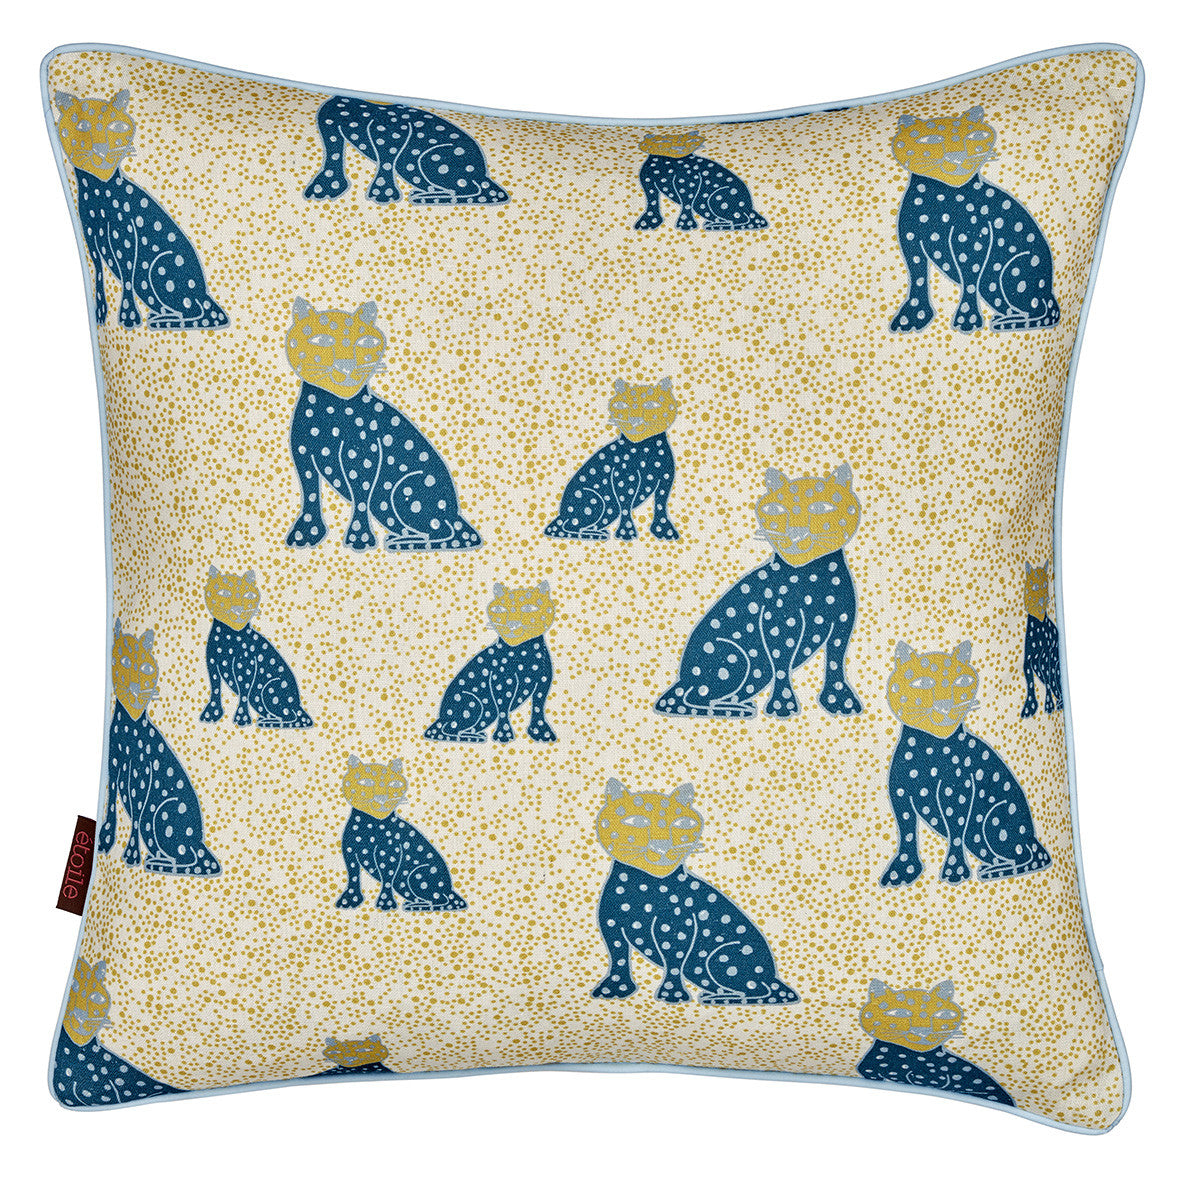 Graphic Leopard Pattern Linen Union Printed Cushion In Dark Petrol Blue, Light Blue & Mustard Yellow